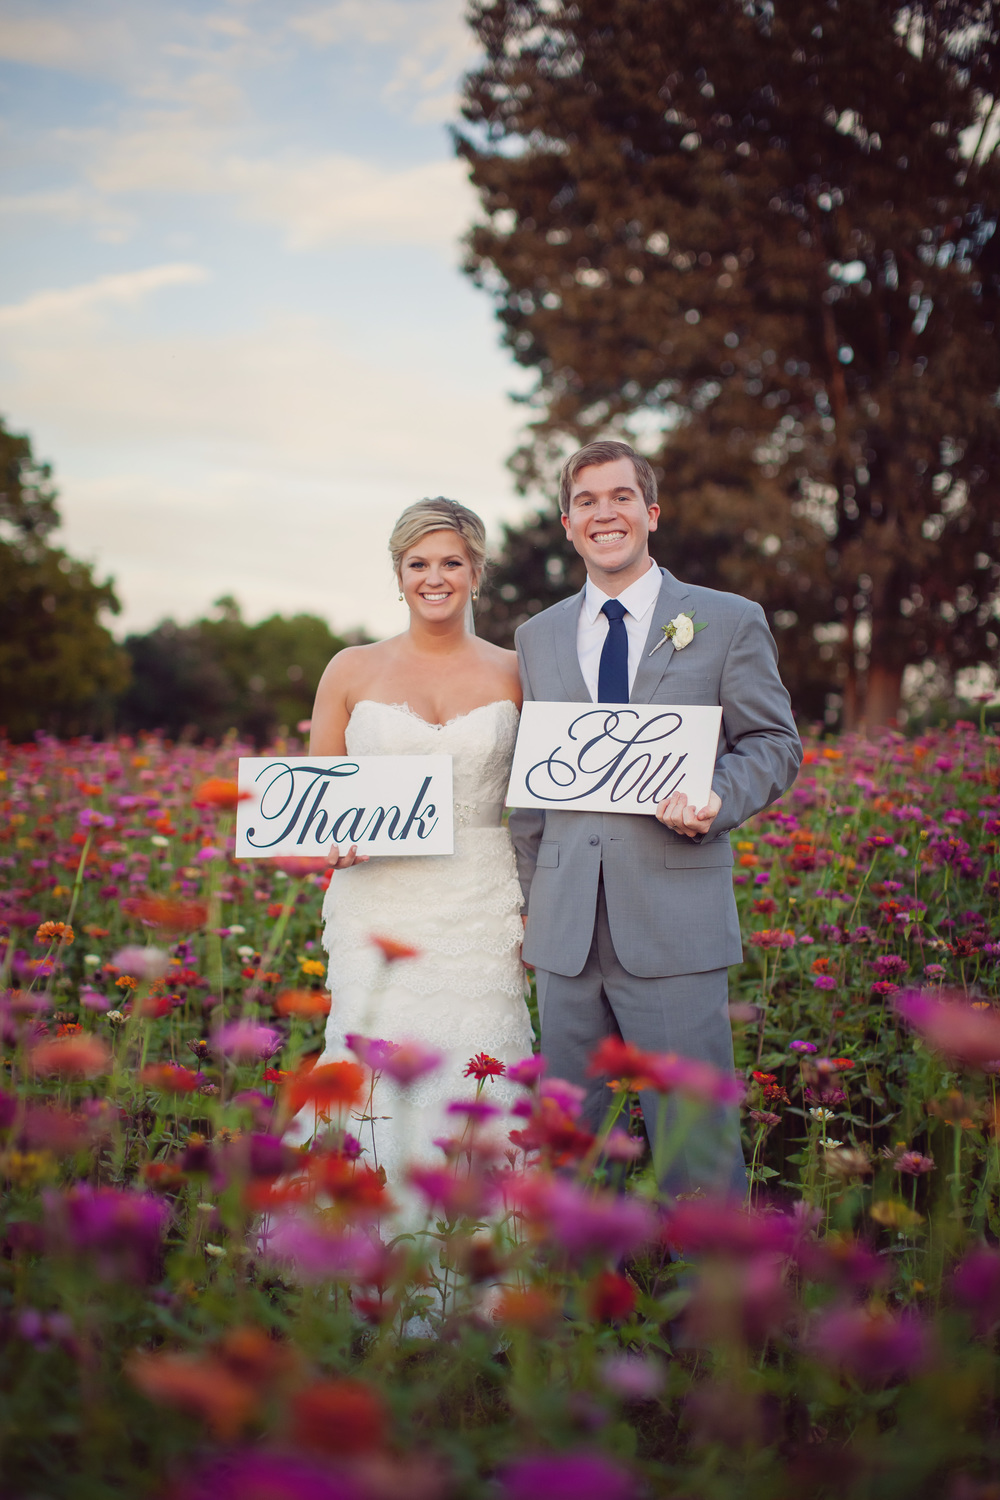 Lowcountry wedding Charlesotn, SC by Rebecca Keeling Photography